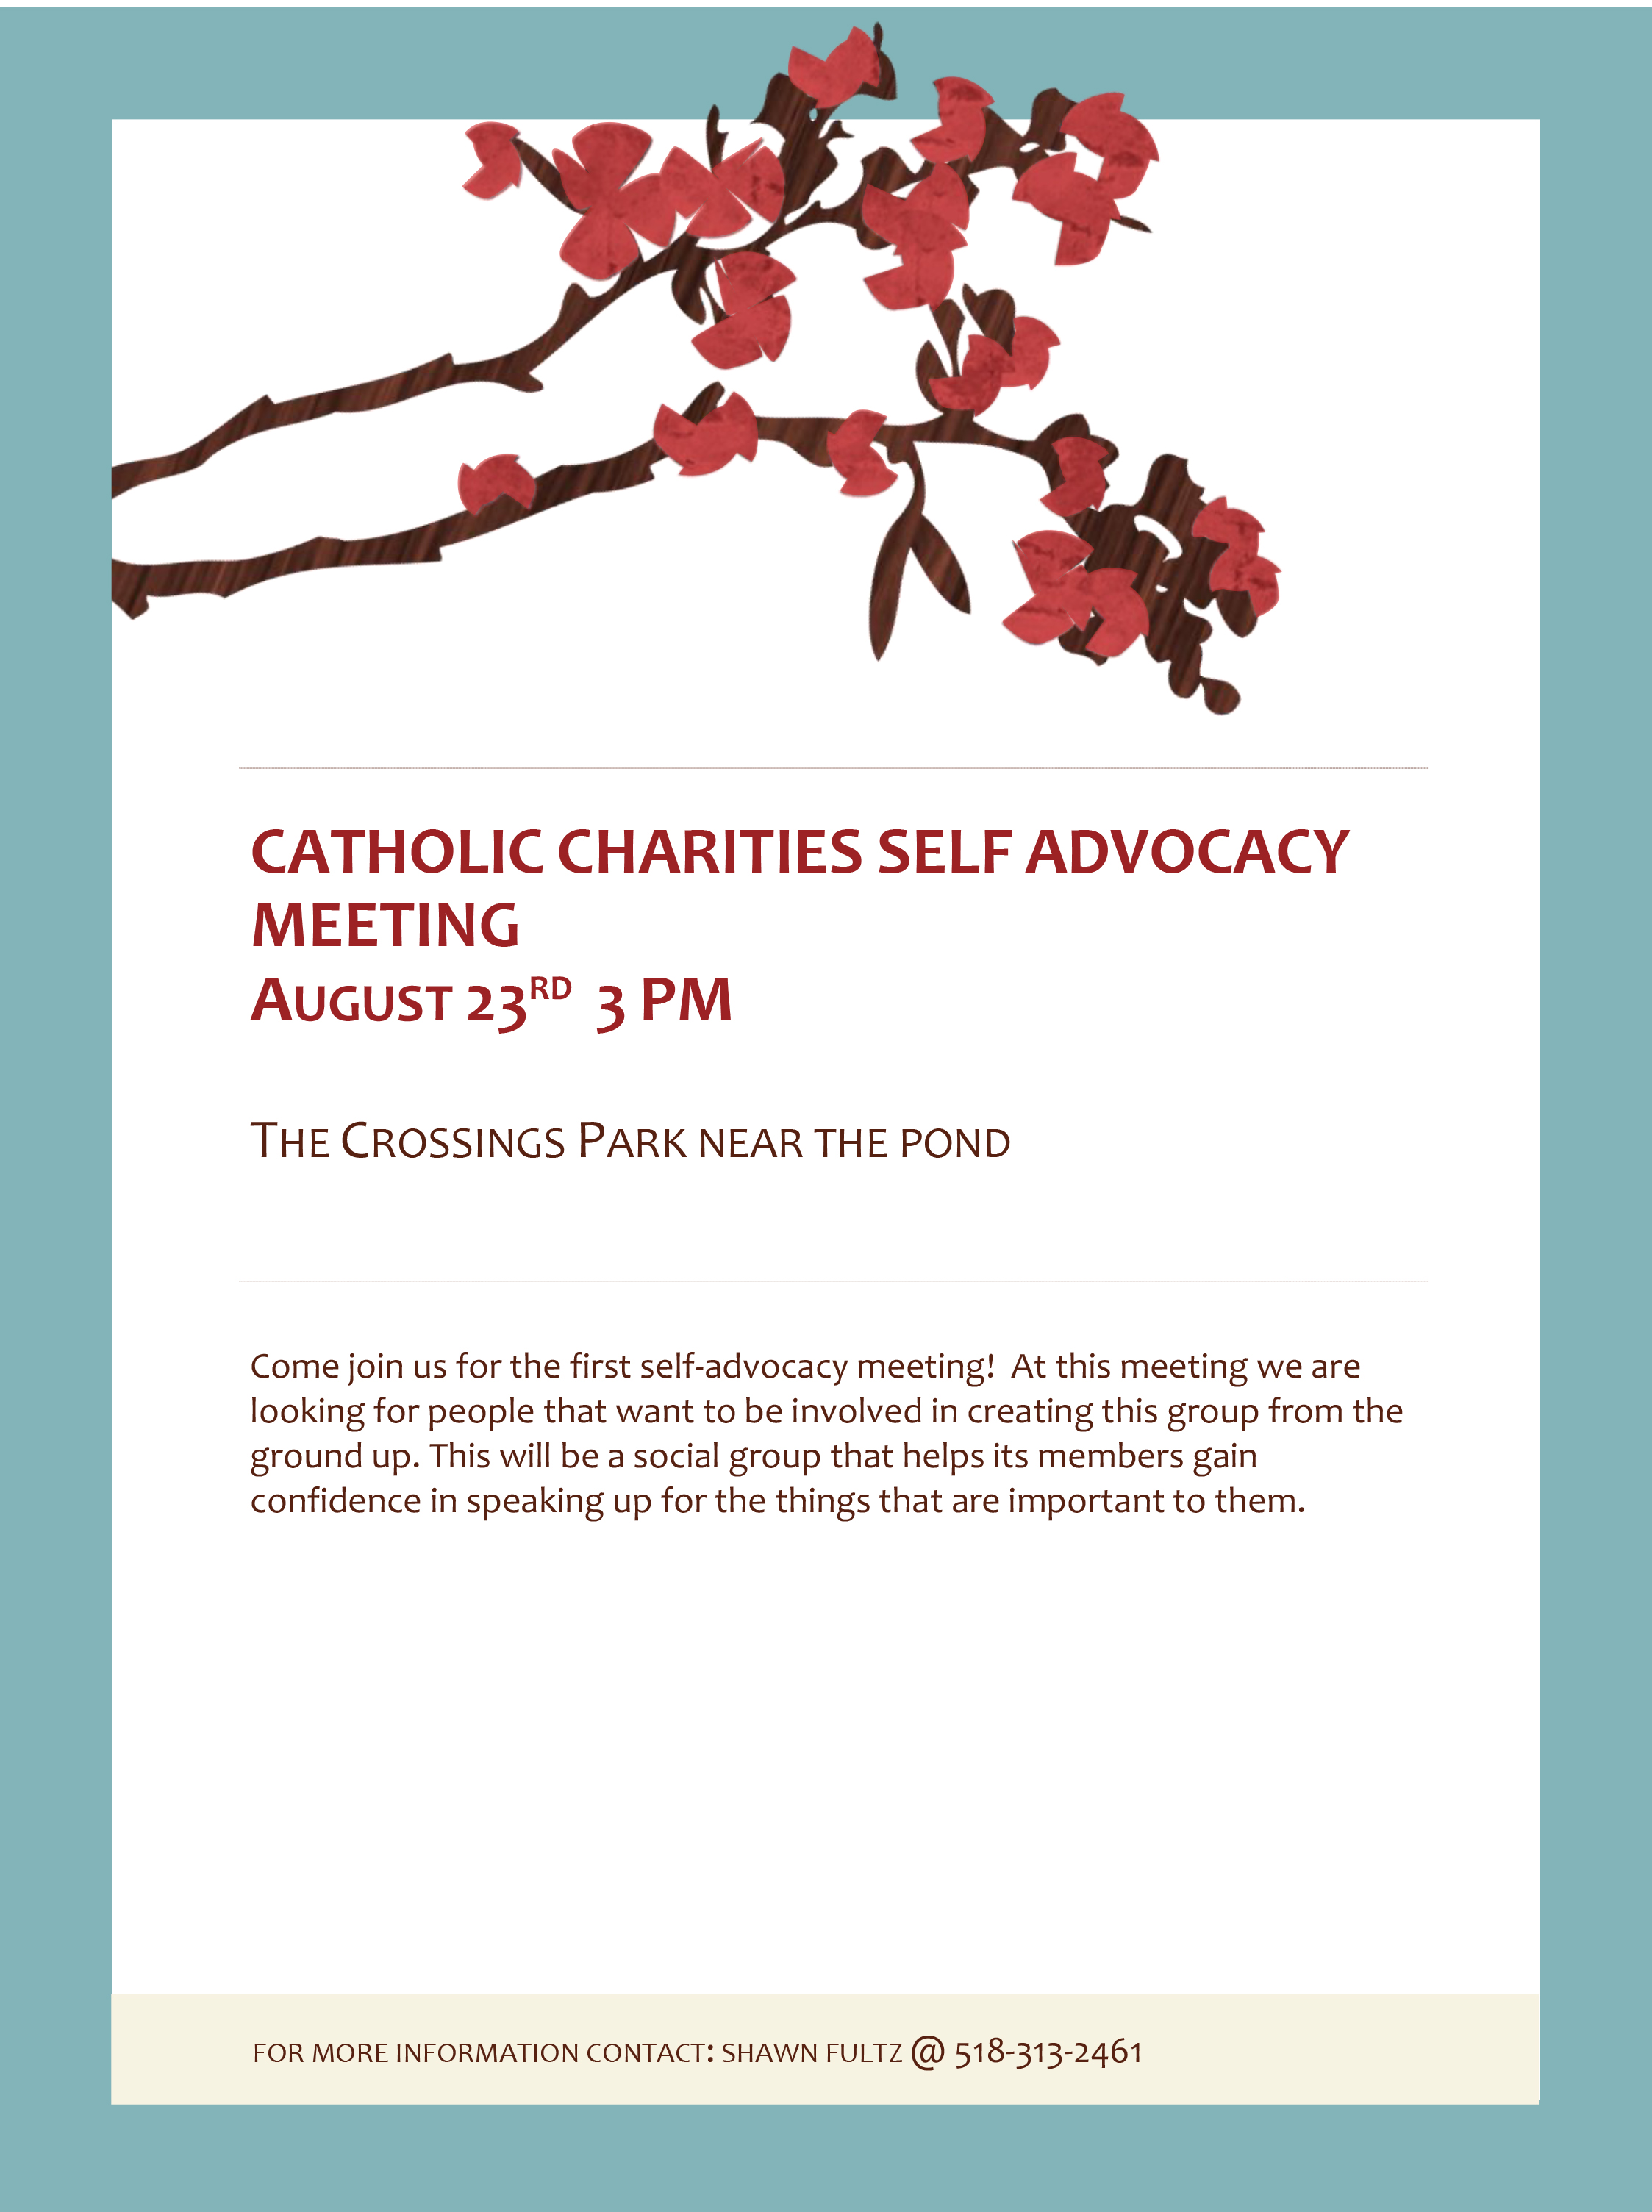 Catholic Charities Self Advocacy Meeting